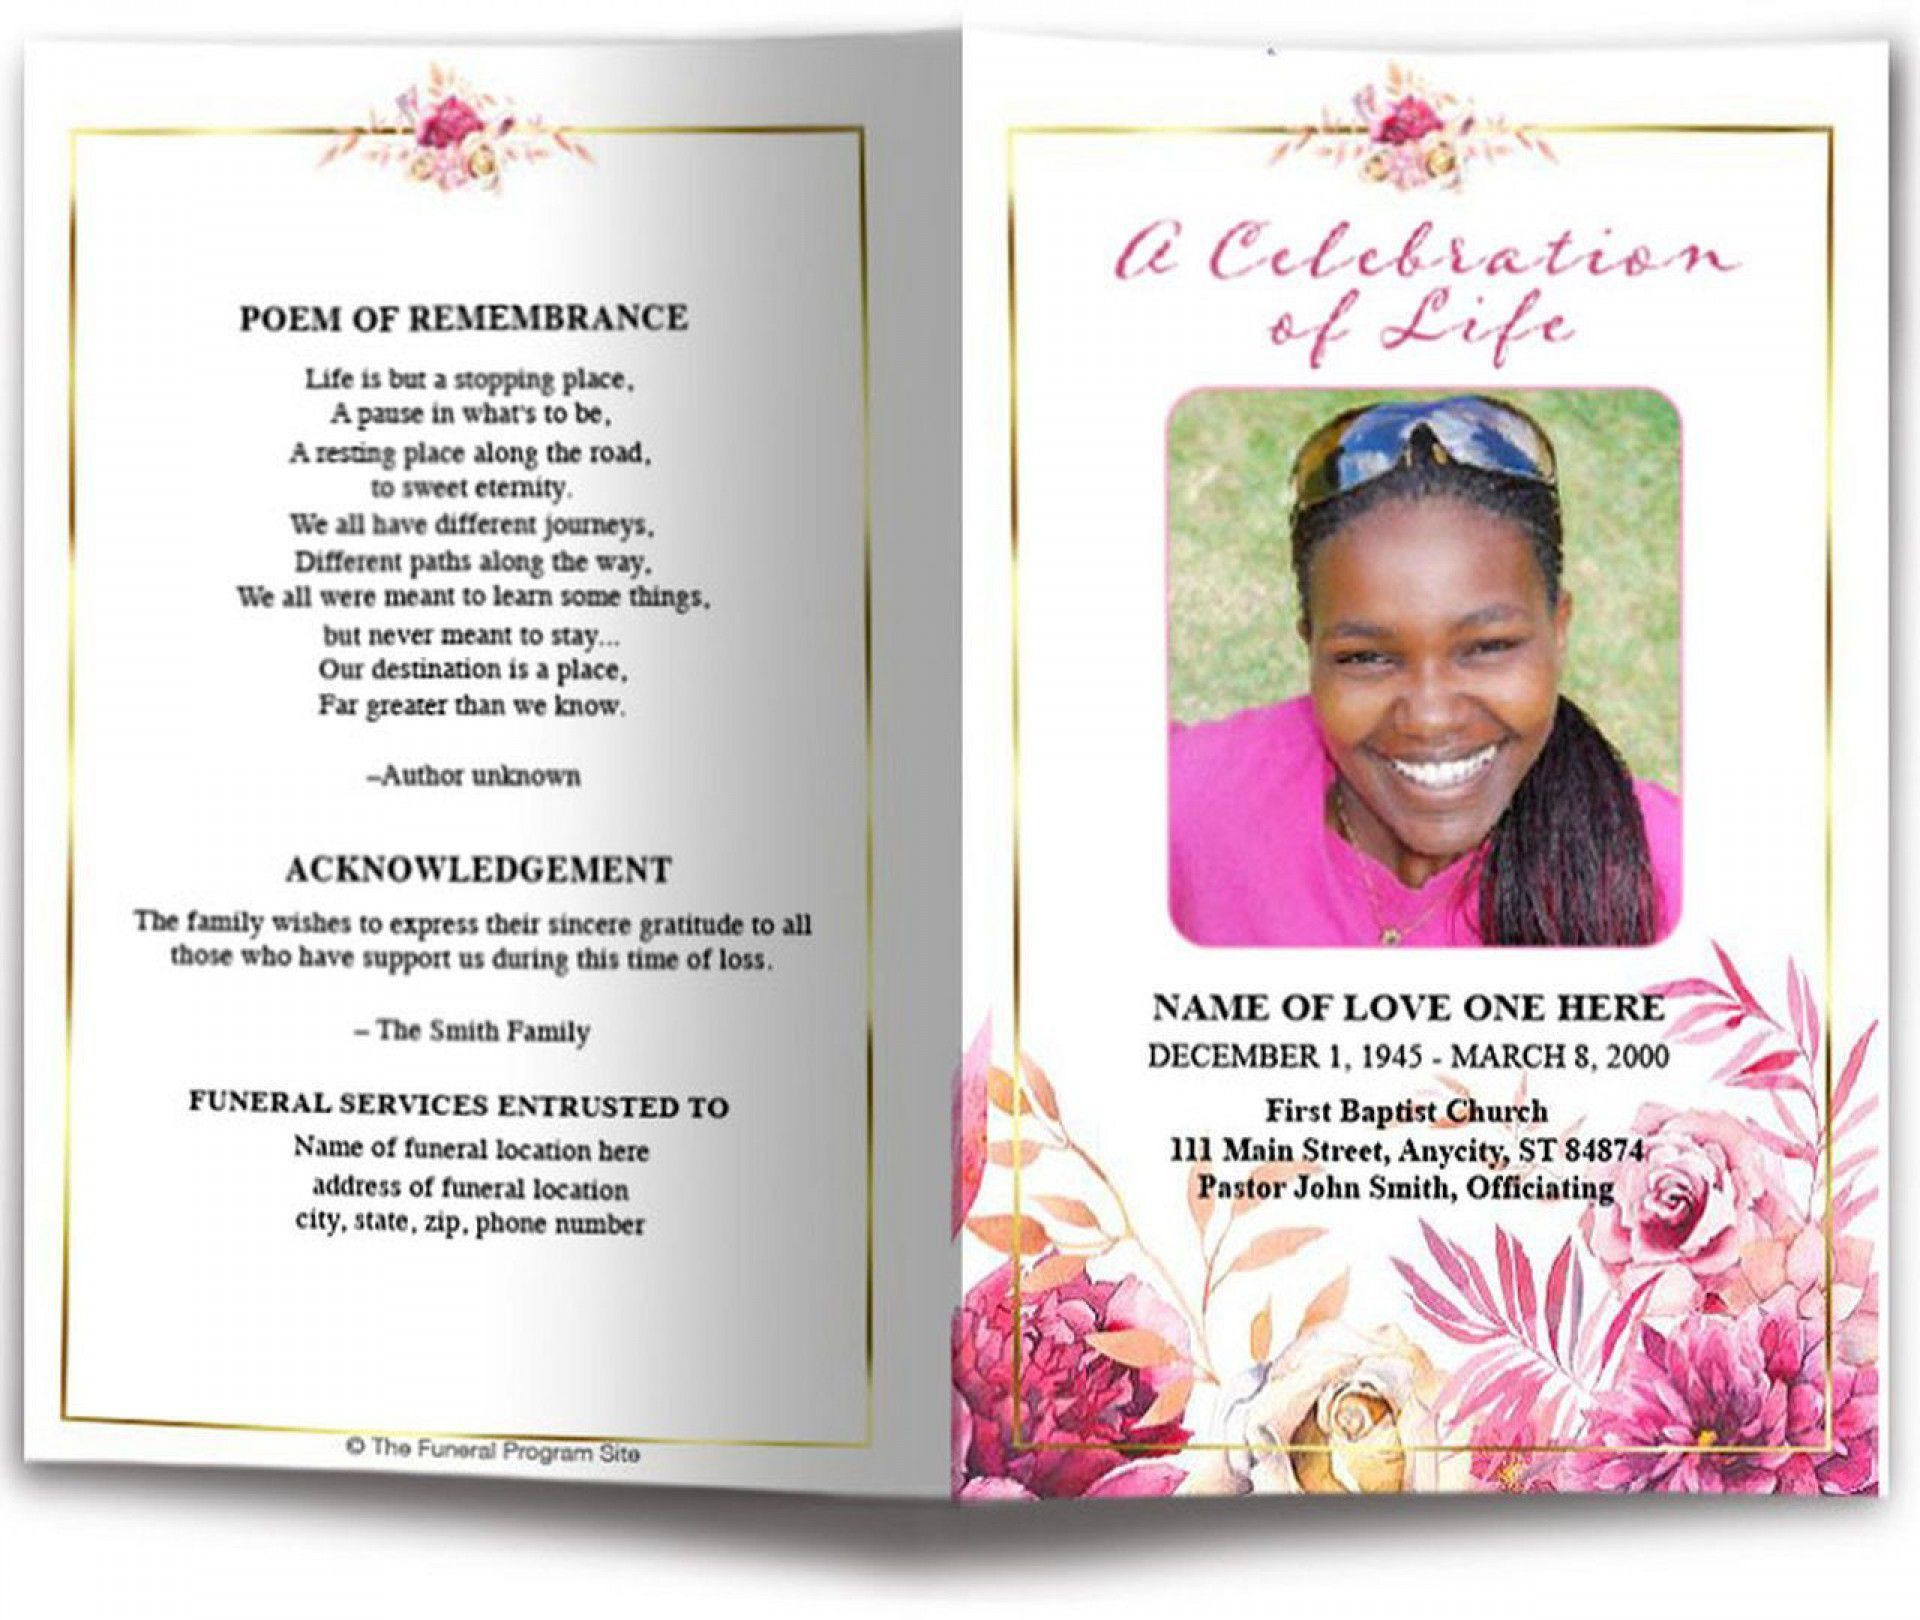 009 Archaicawful Template For Funeral Program On Word High Def  2010 Free Sample WordingFull